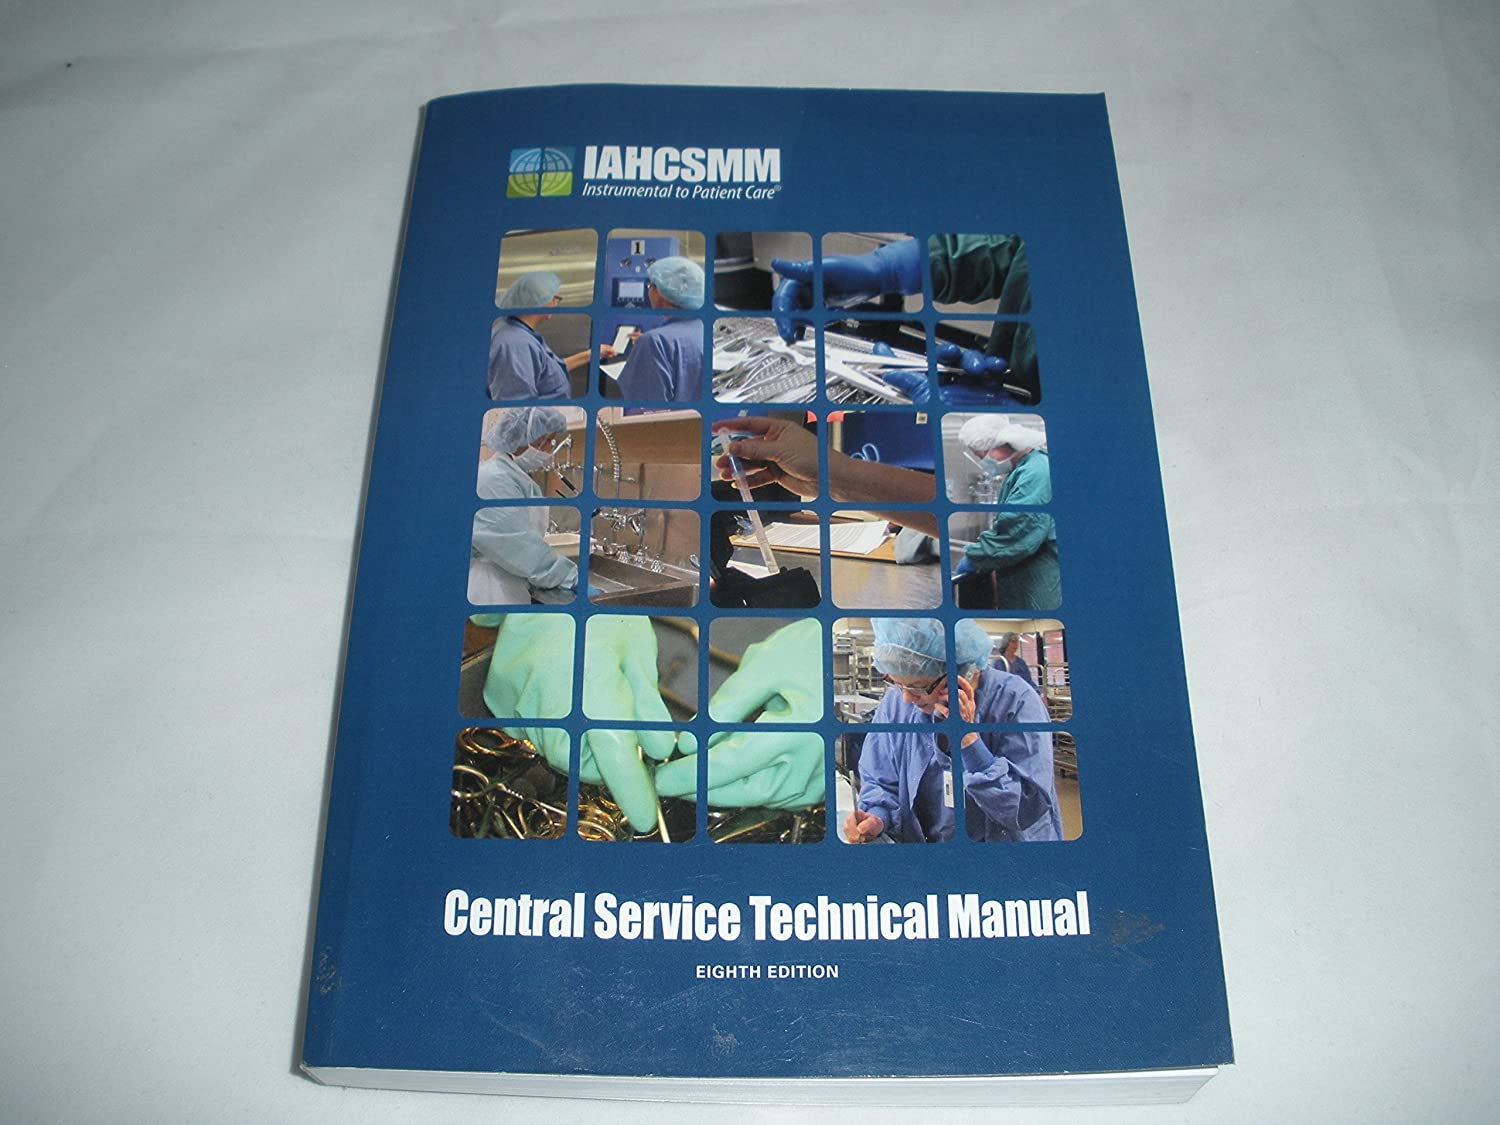 Amazon.com : Central Service Technical Manual 8th Edition : Everything Else